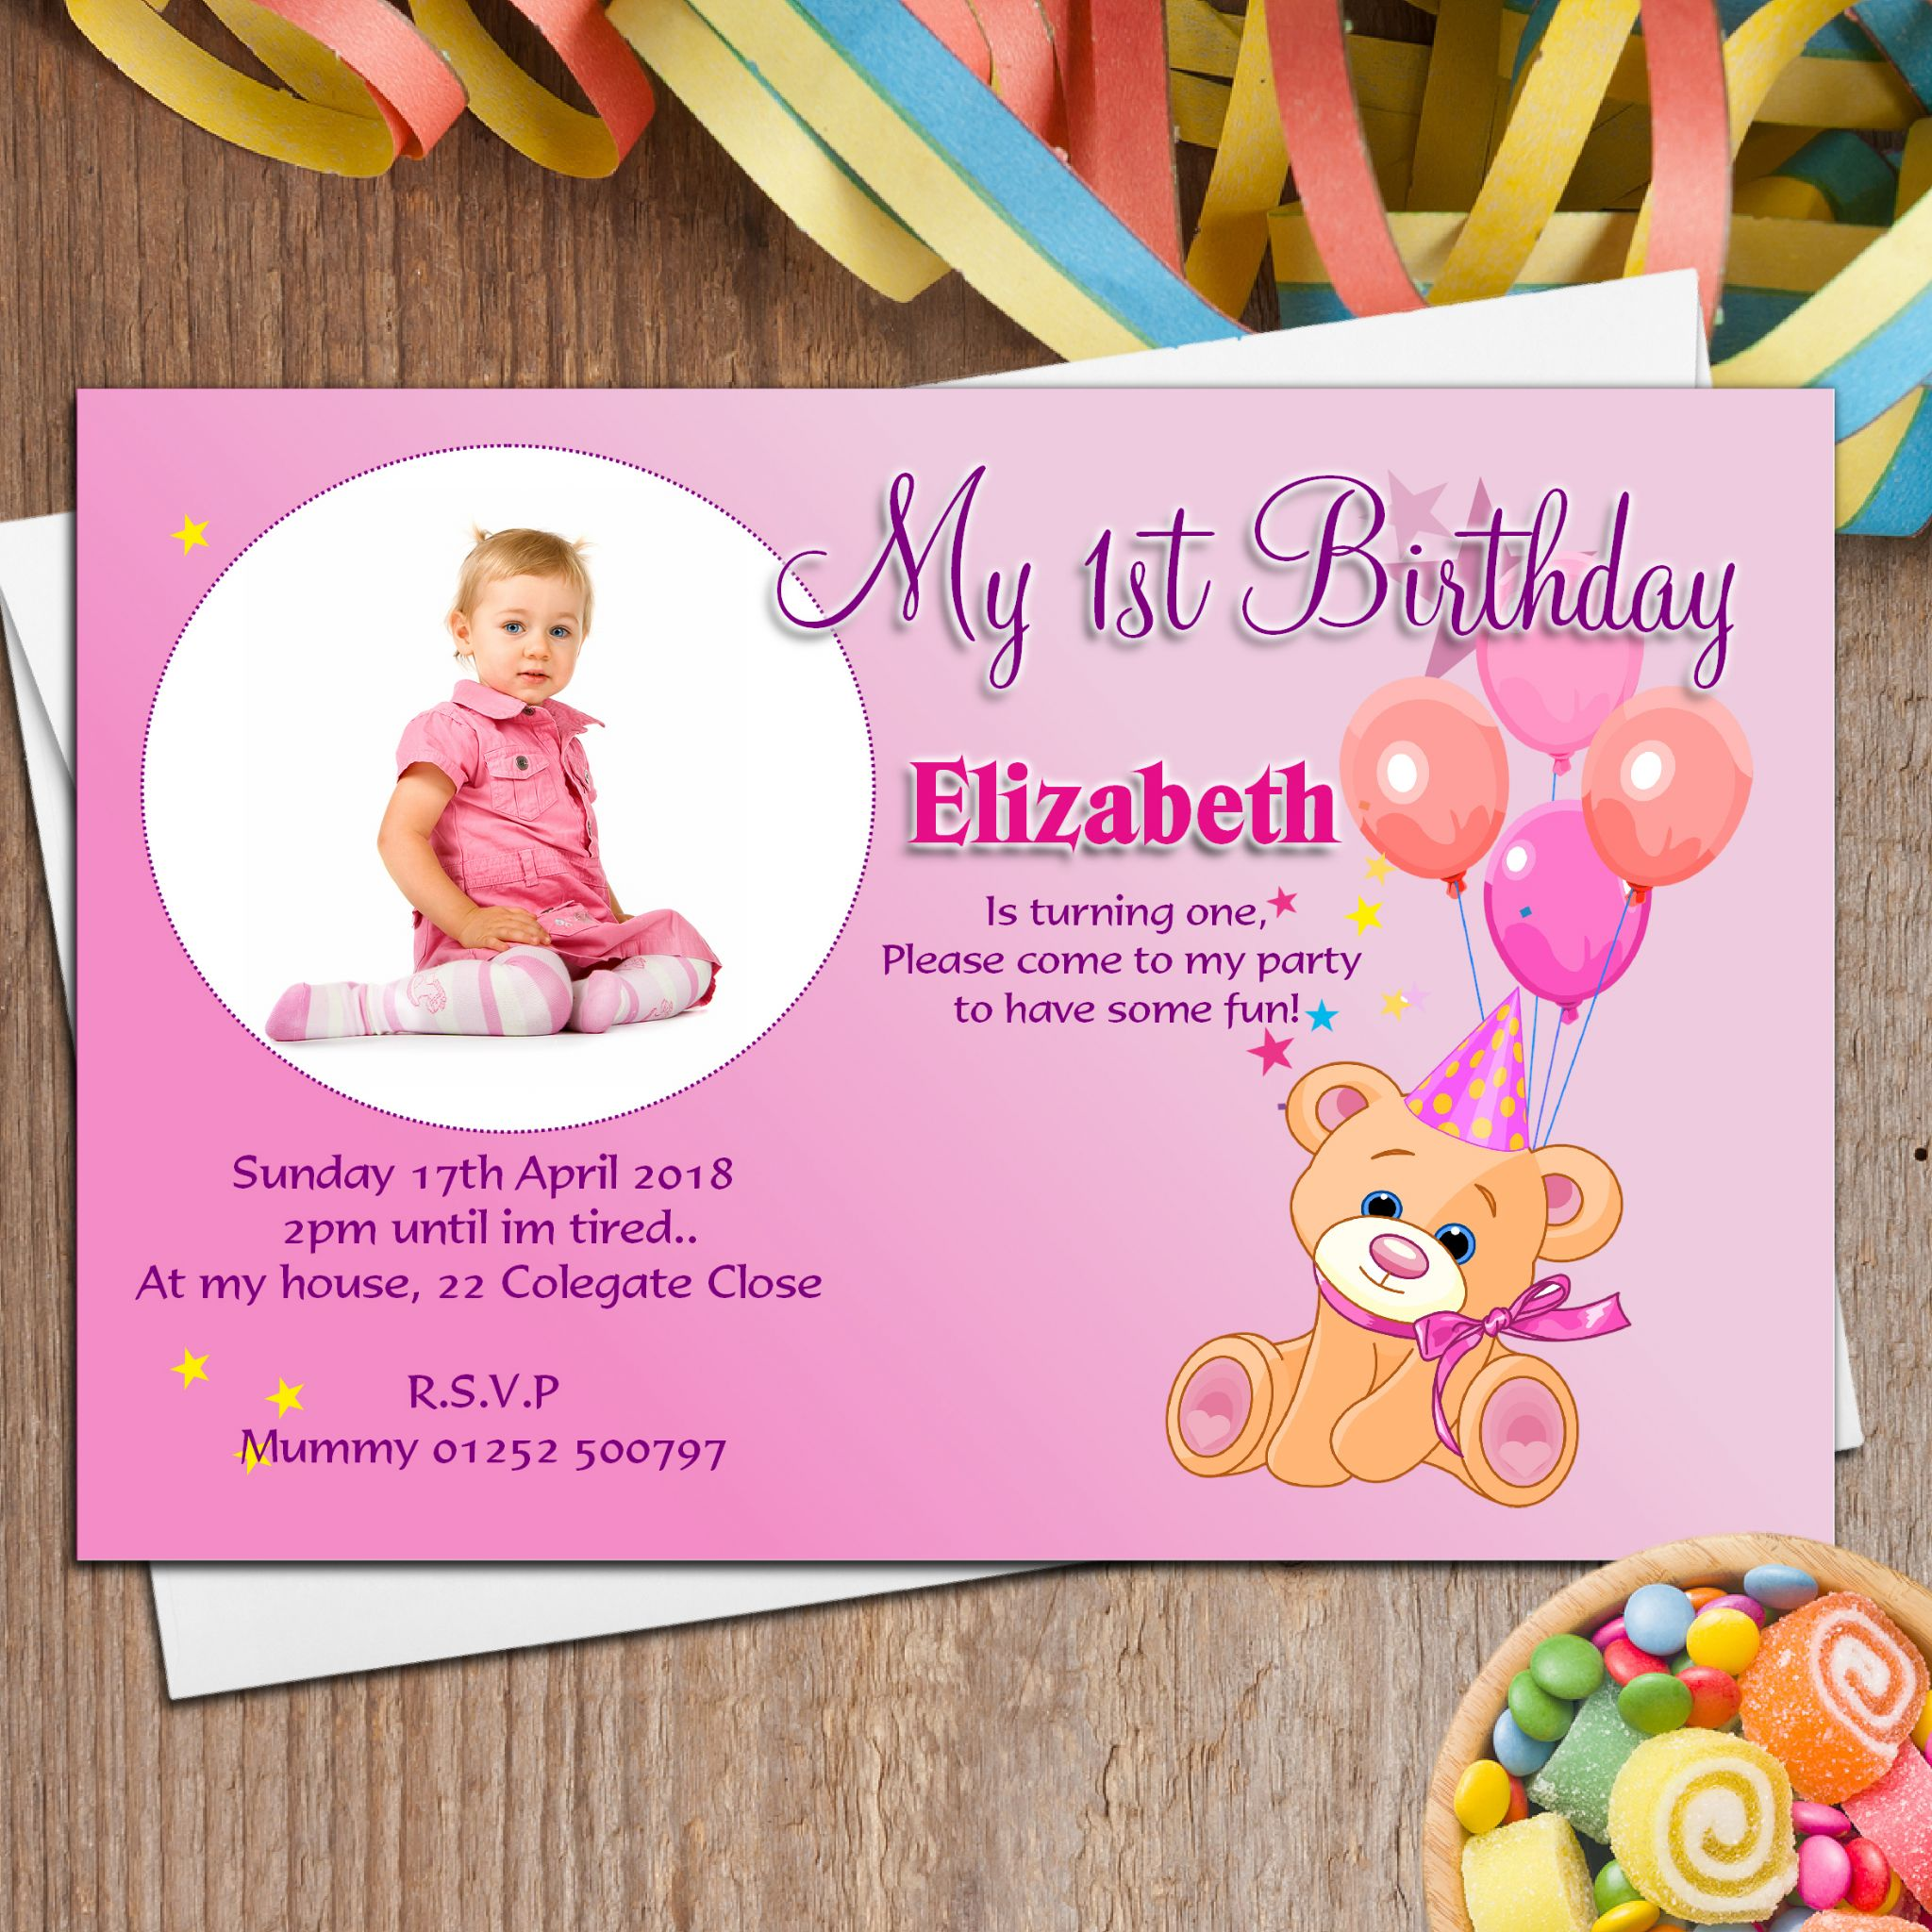 my daughter birthday invitation message ; Cool-Photo-Birthday-Invitations-To-Design-Birthday-Invitation-Wording